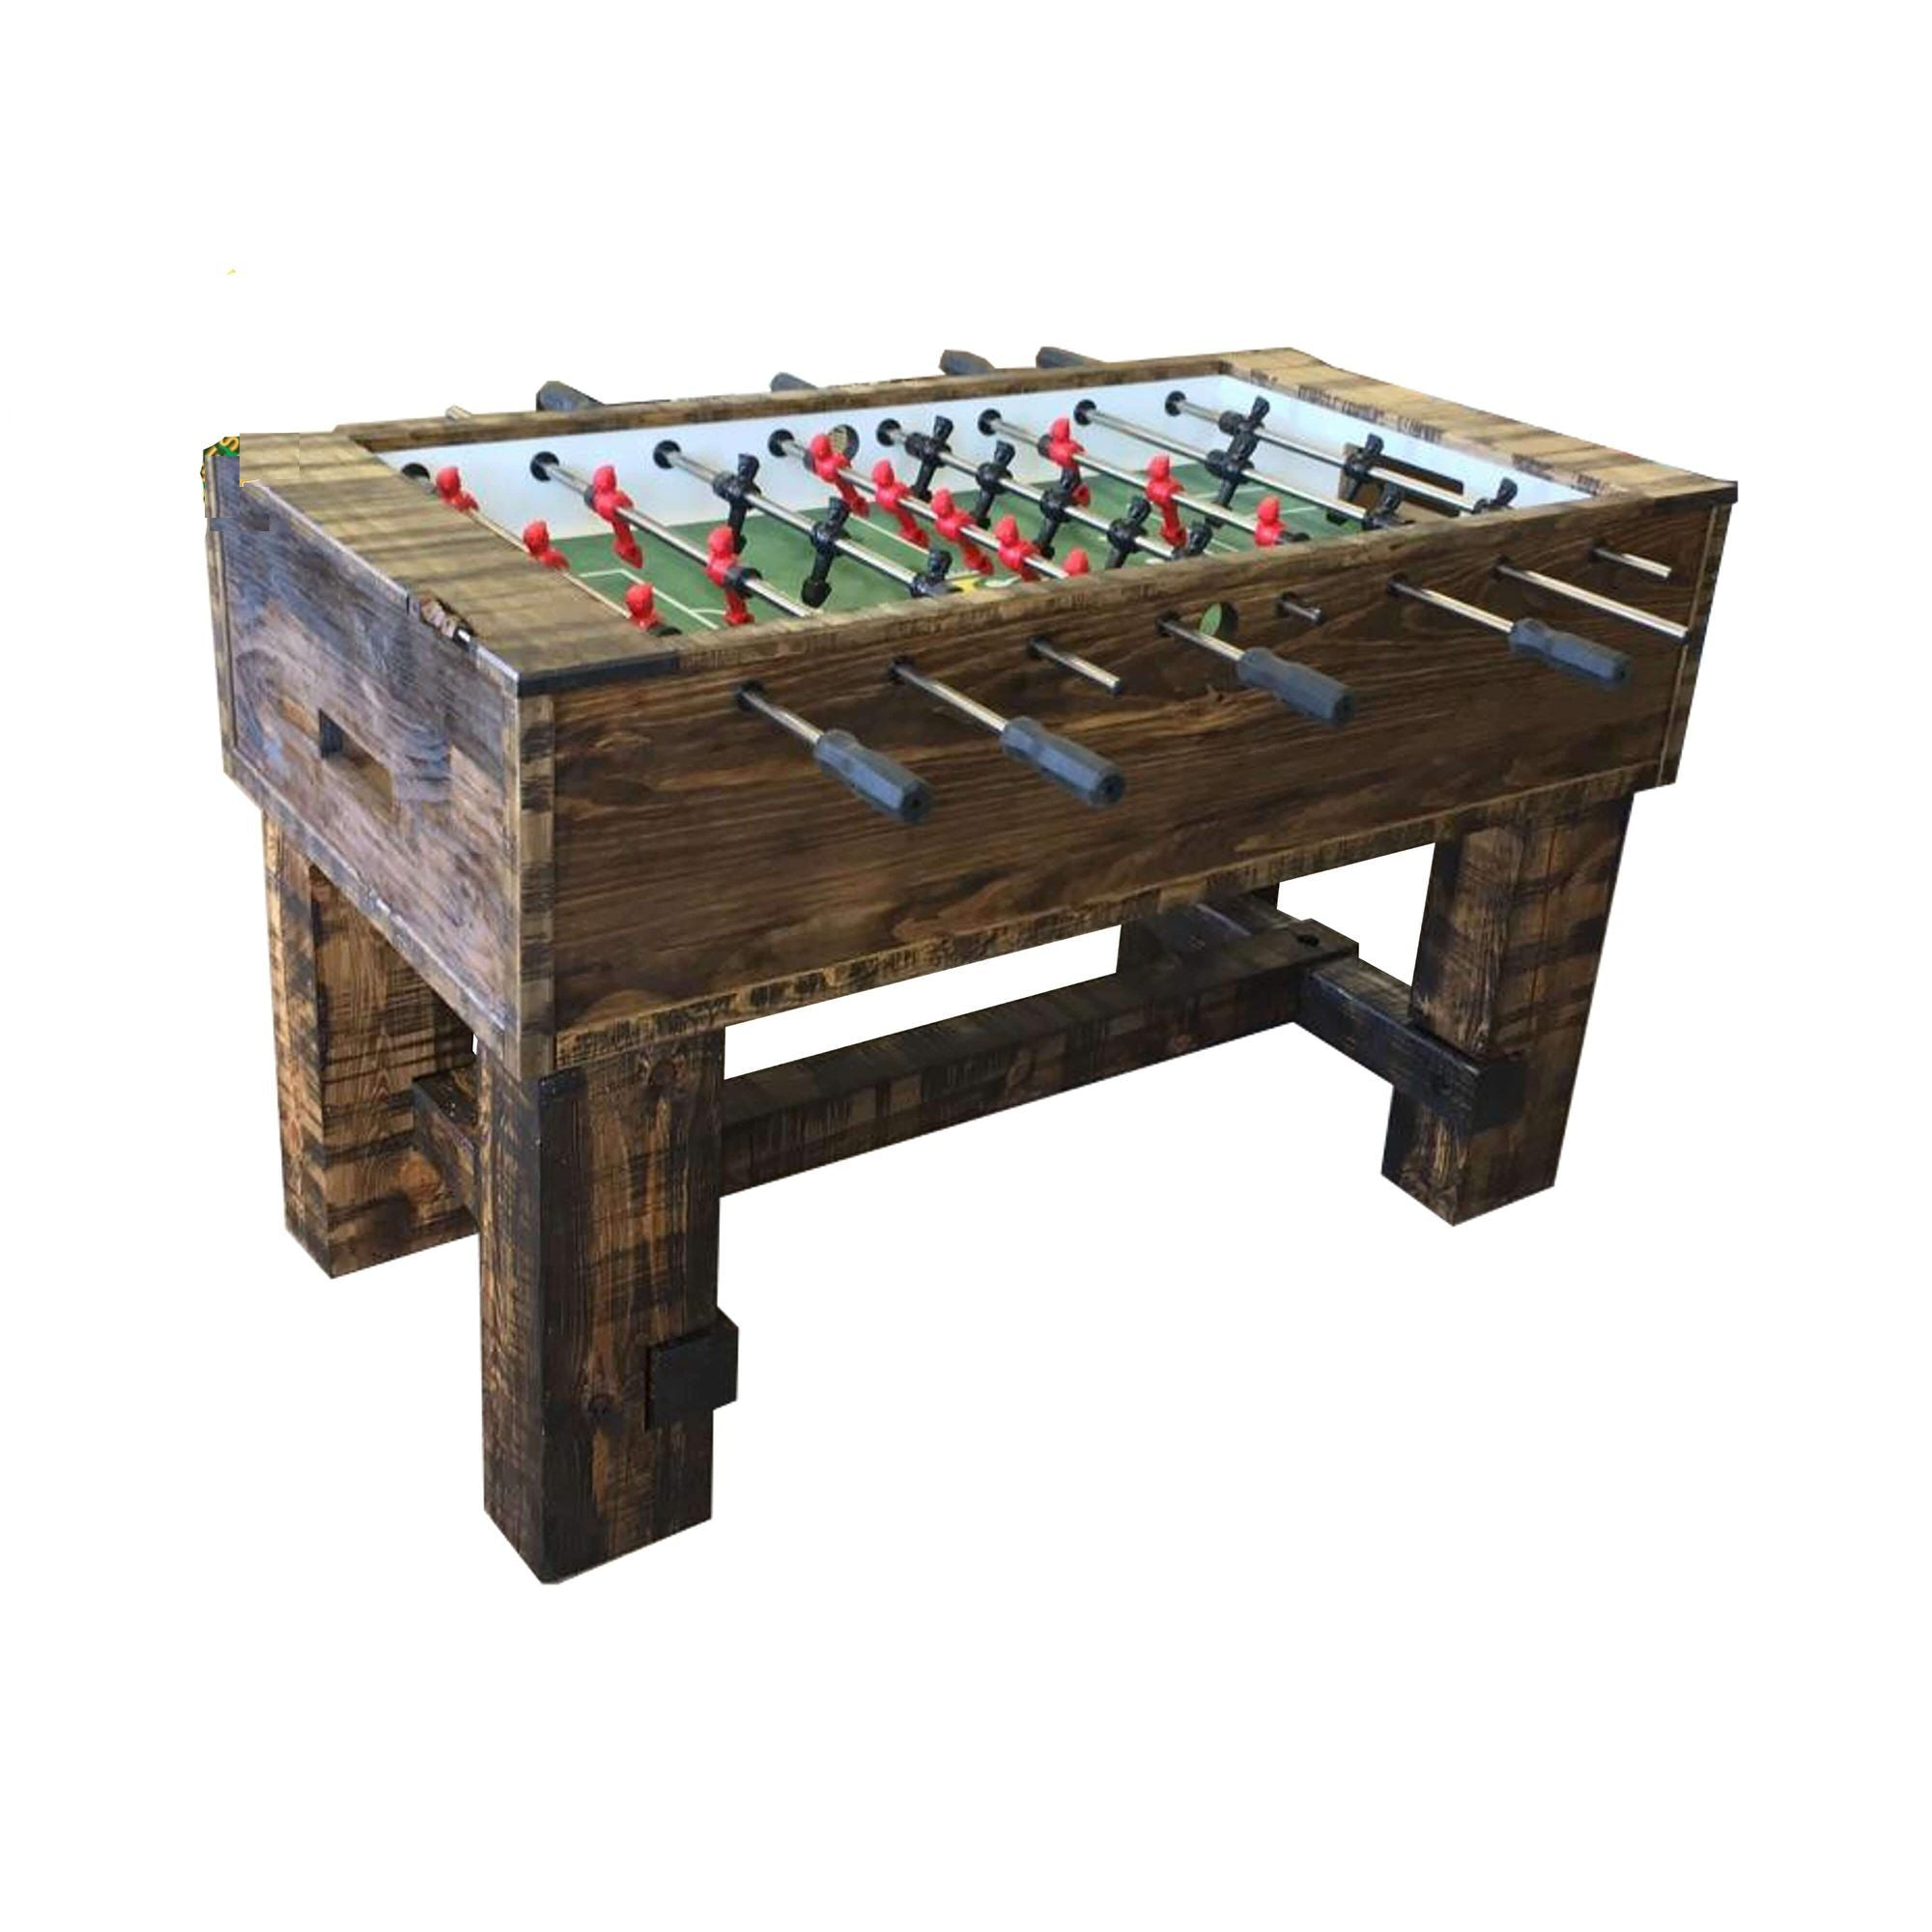 "Performance Games Sure Shot RP Foosball Table 56"" - Gaming Blaze"